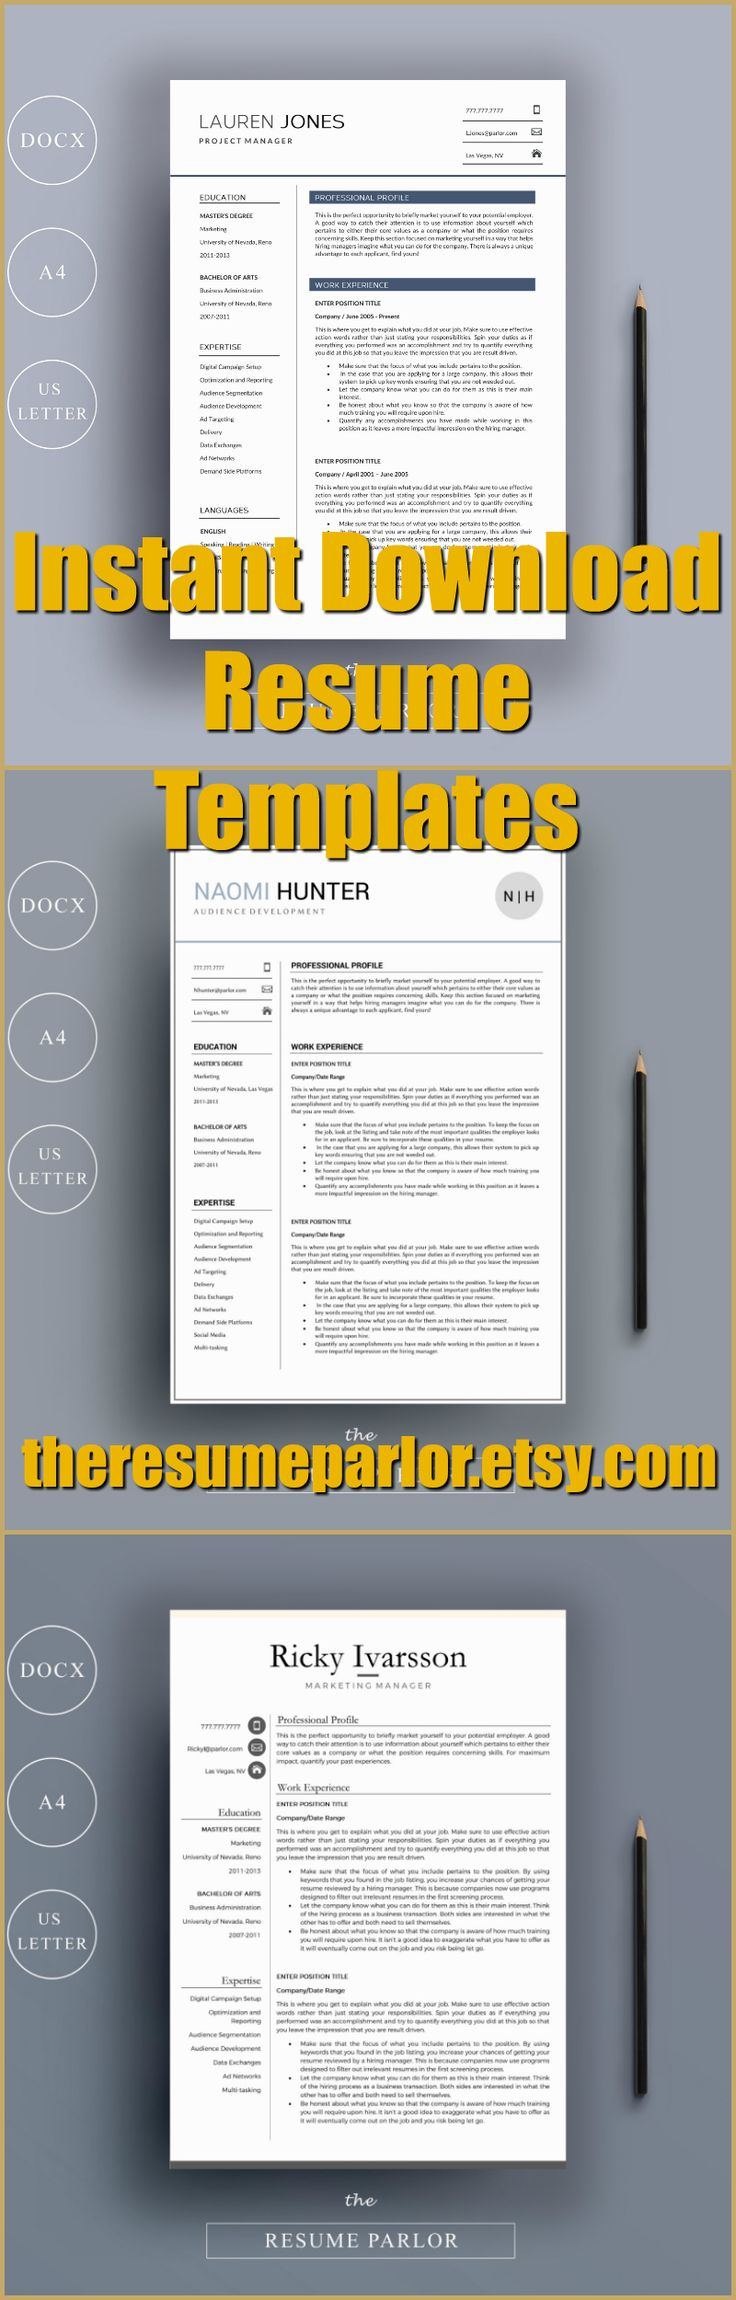 Microsoft Word 2007 Template For Resume%0A Super easy to fill out resume template for MS Word  Compatible with MS Word